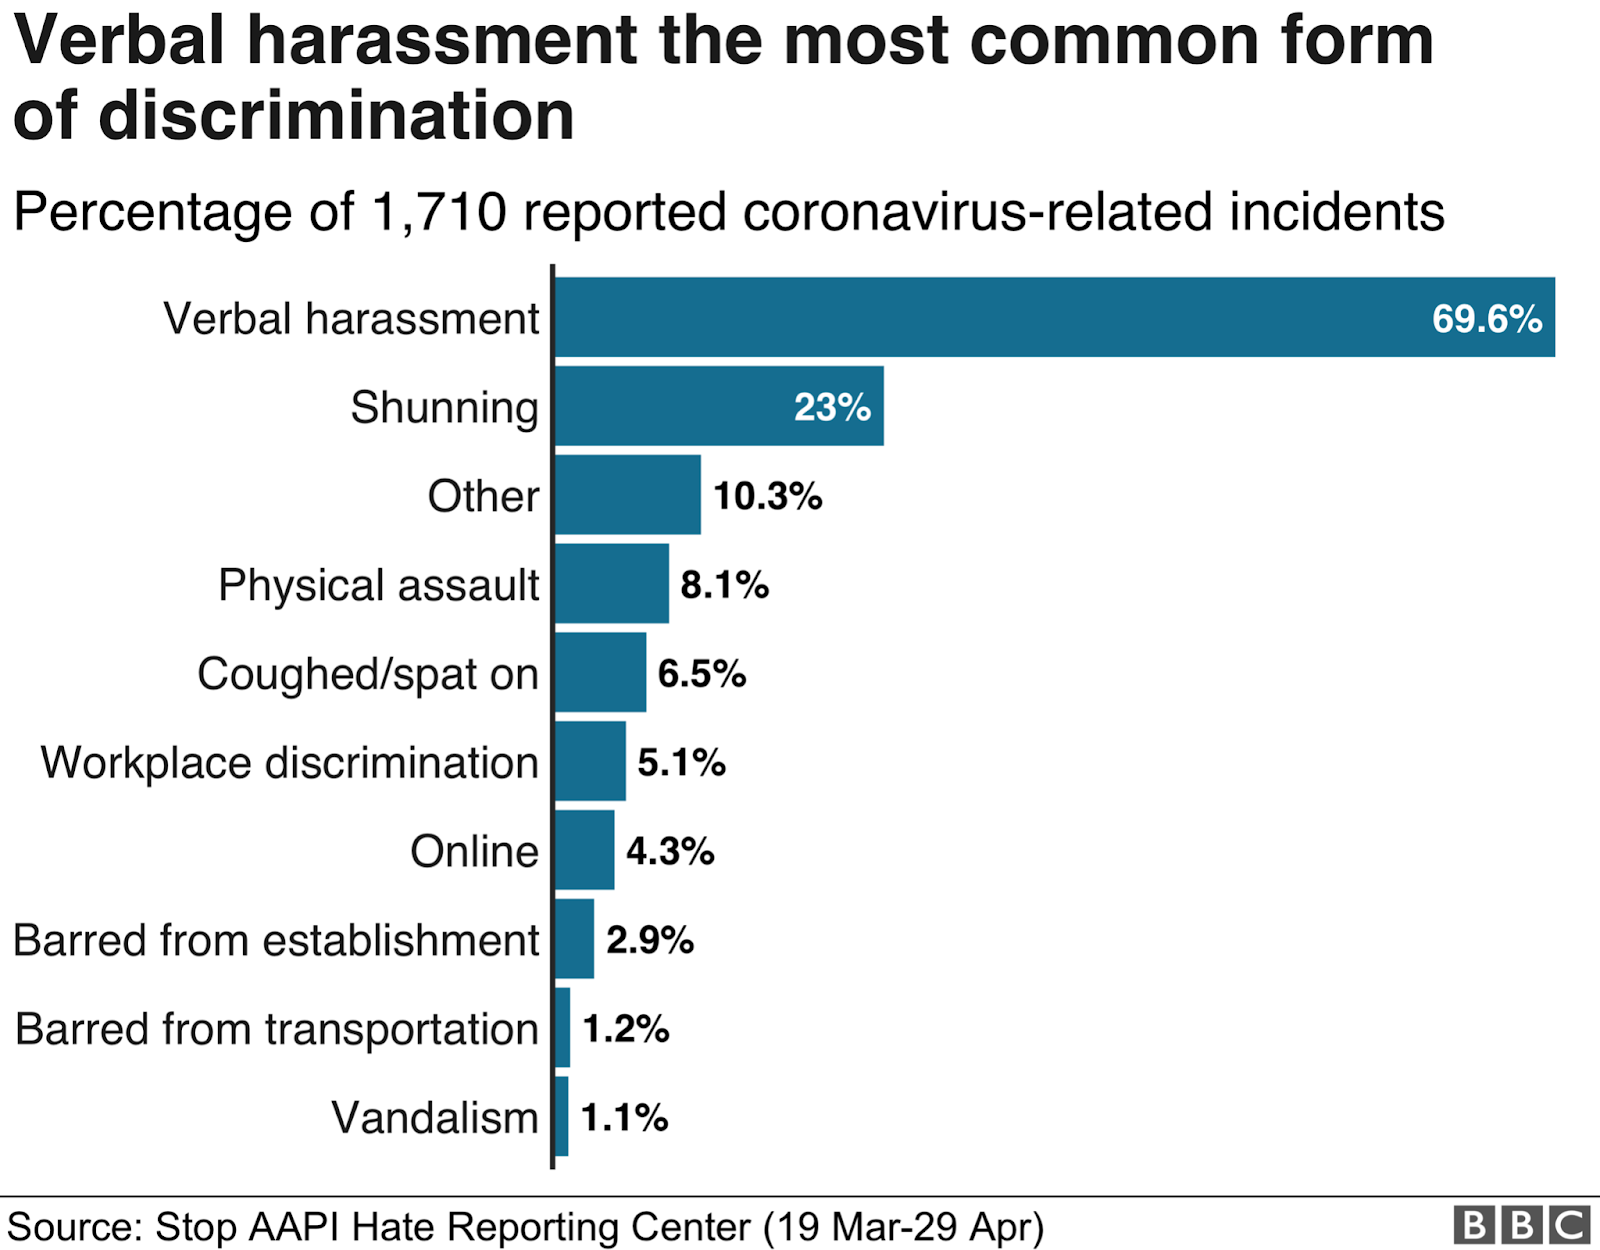 New Data on anti-asian hate incidents against elderly and total national incidents in 2020